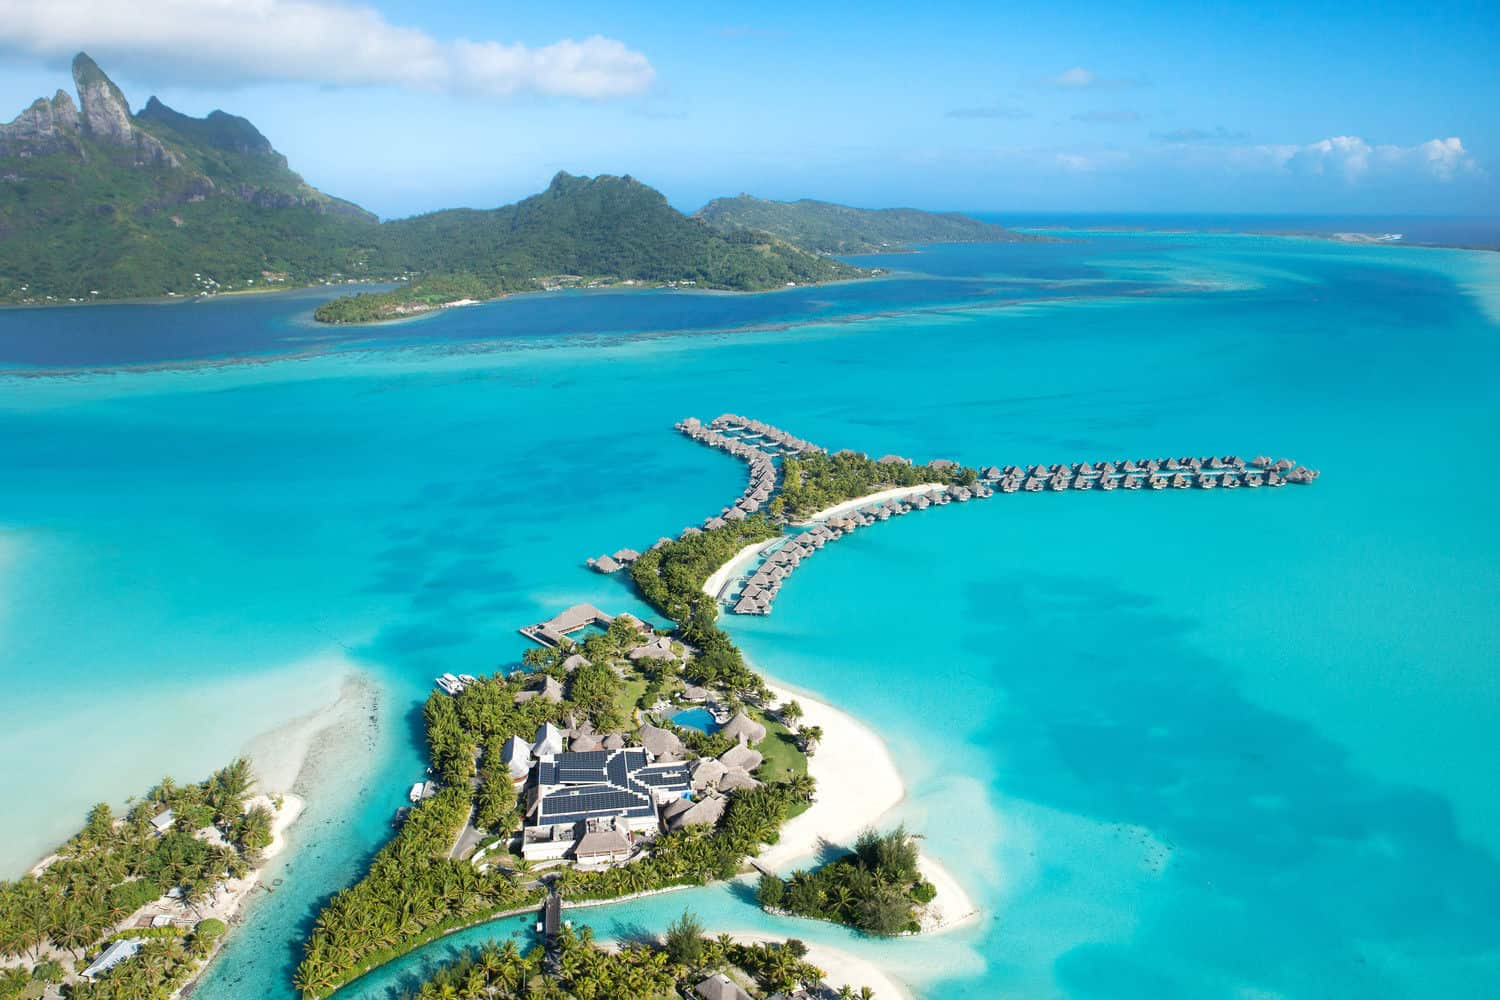 The St. Regis Bora Bora Resort 5